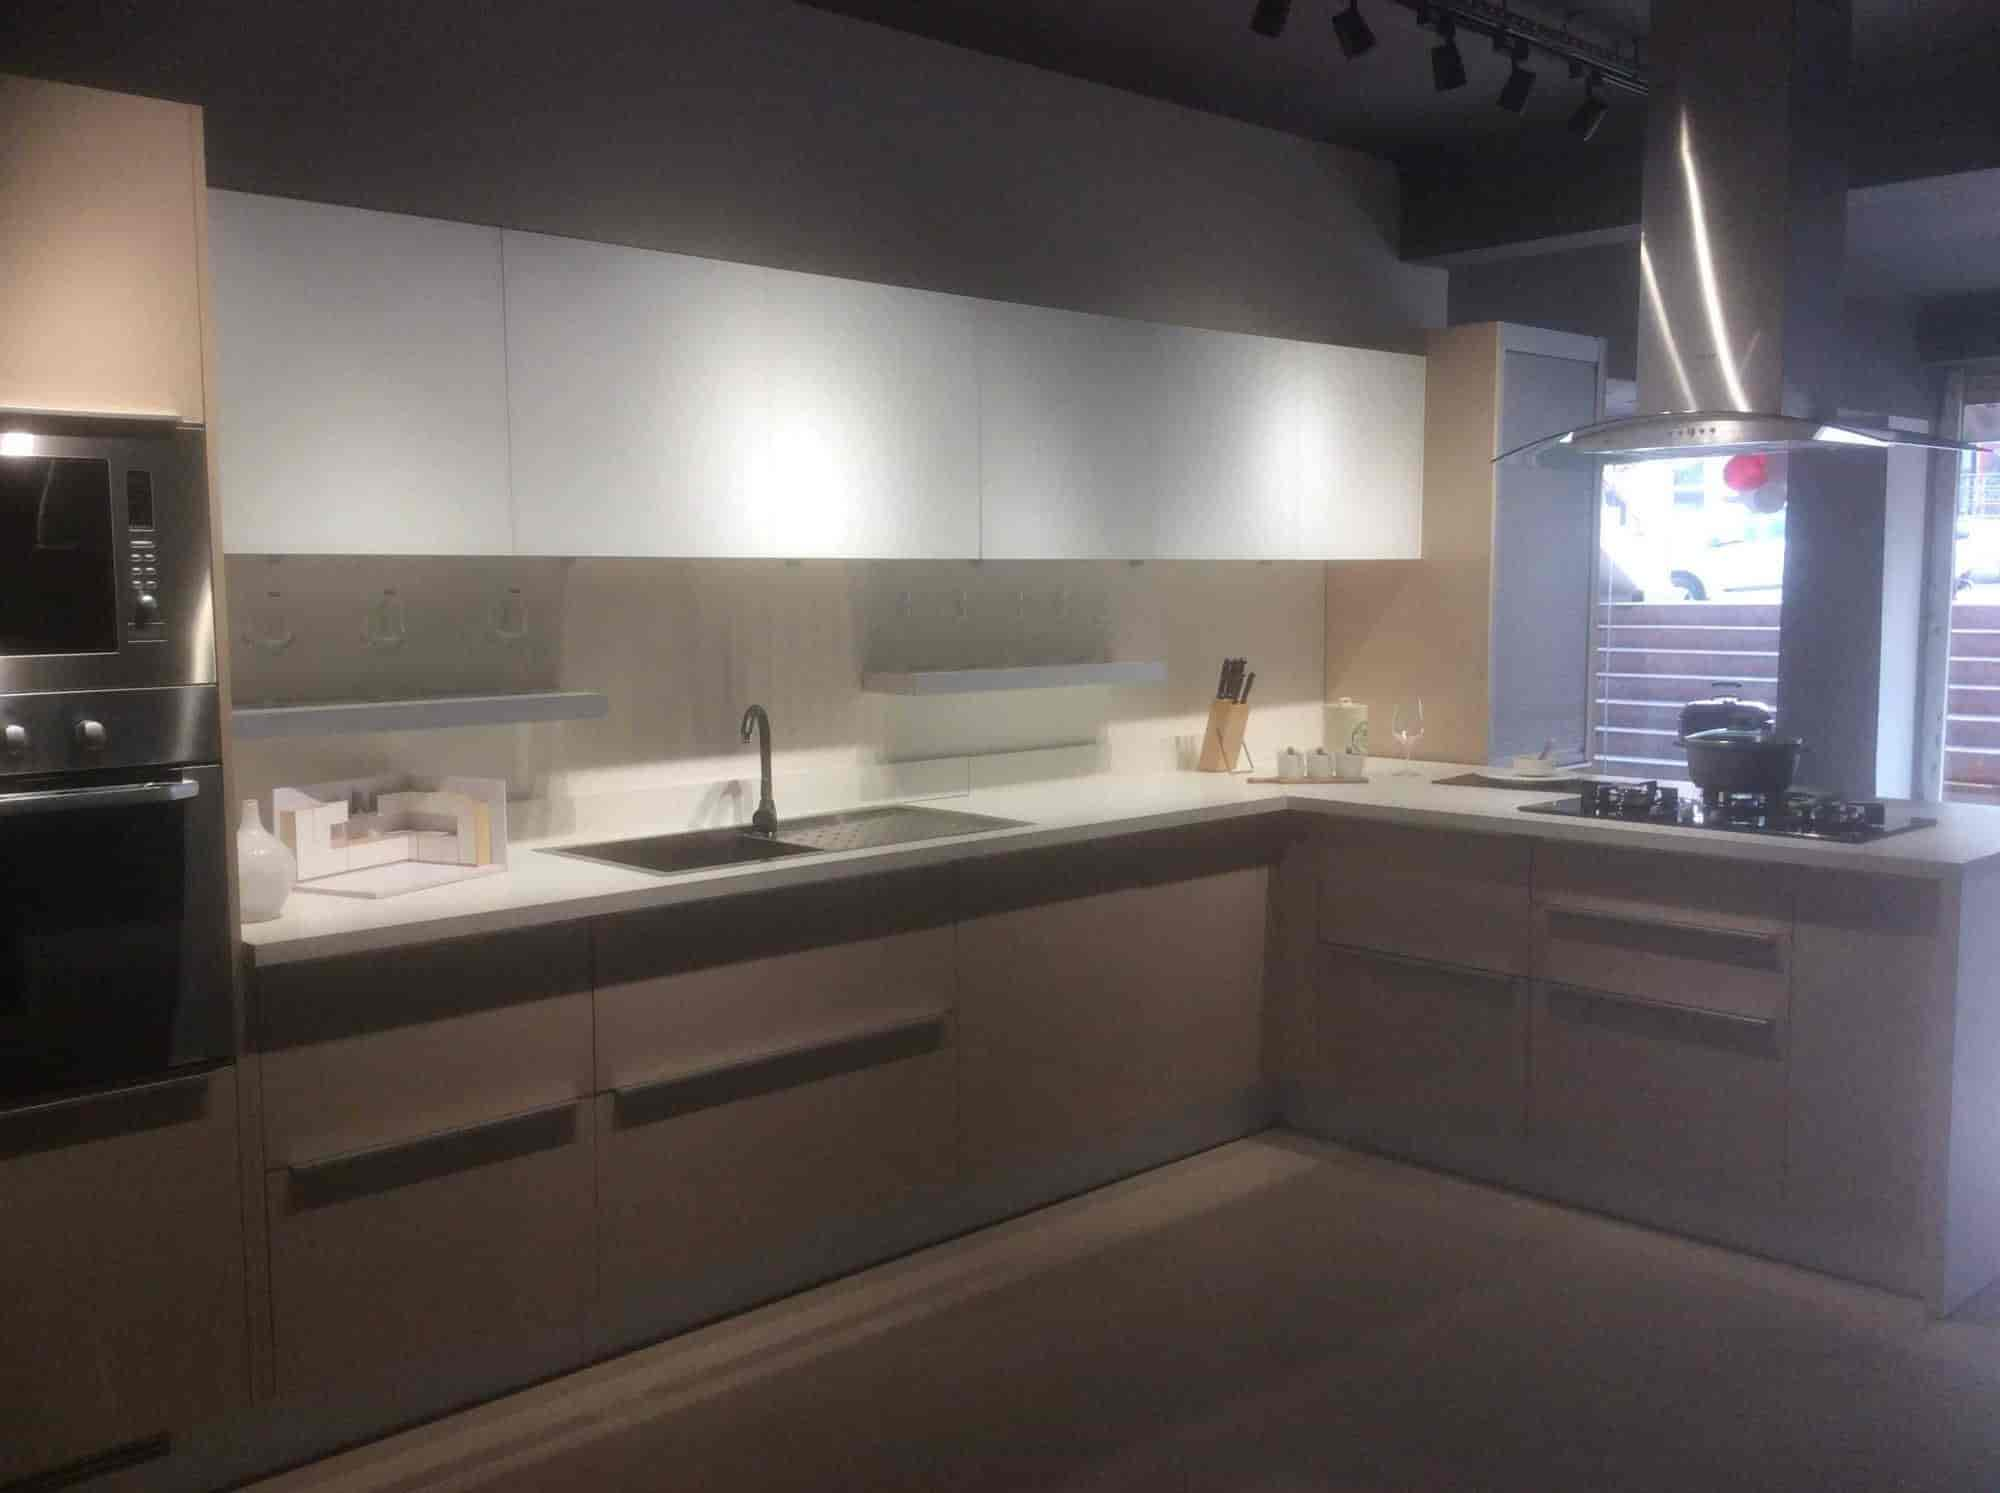 Noida Kitchen And Home Decor Noida Sector 49 Wall Paper Dealers In Noida Delhi Justdial